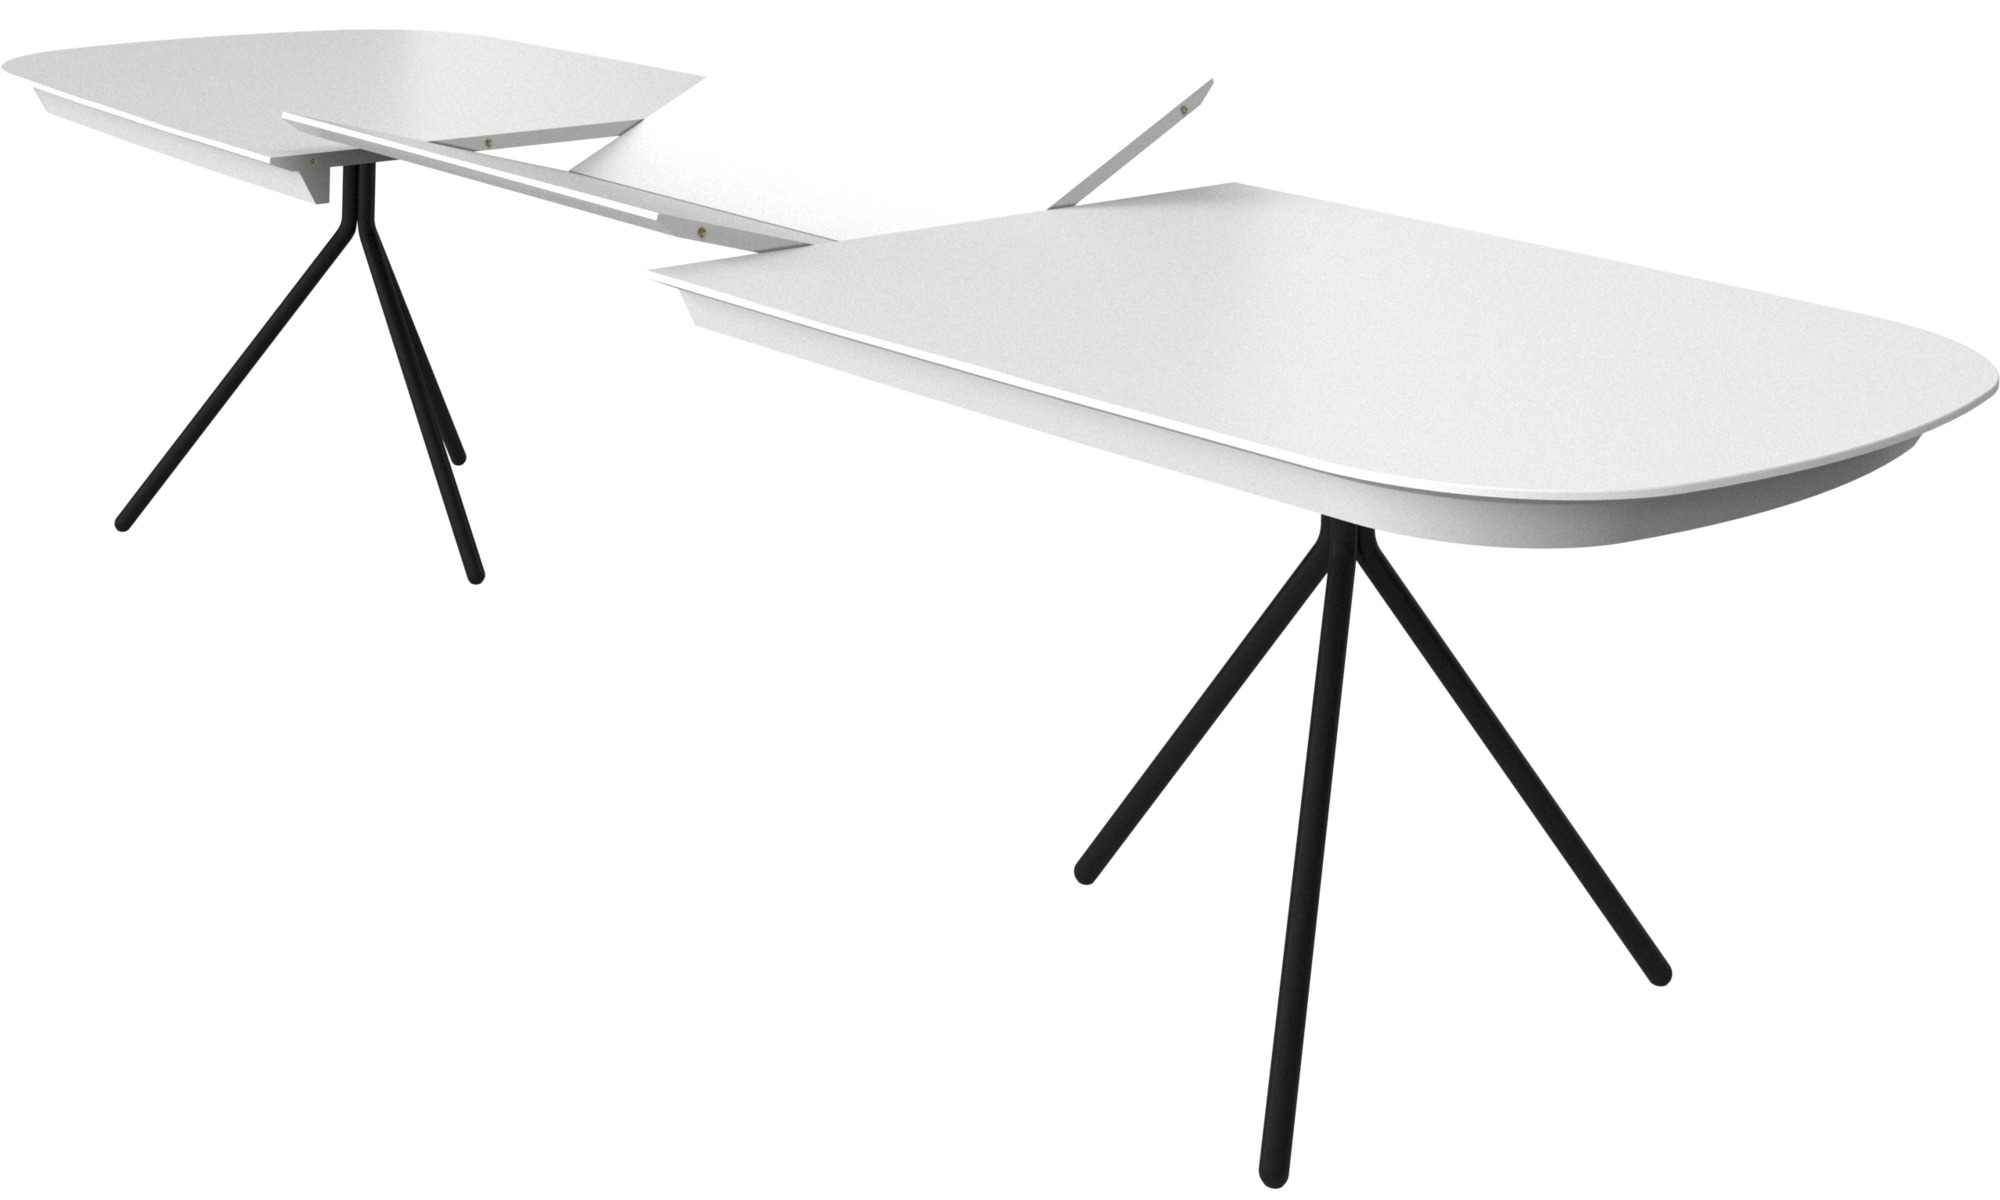 Dining Tables Ottawa Dining Tables Ottawa Table With Supplementary Tabletop